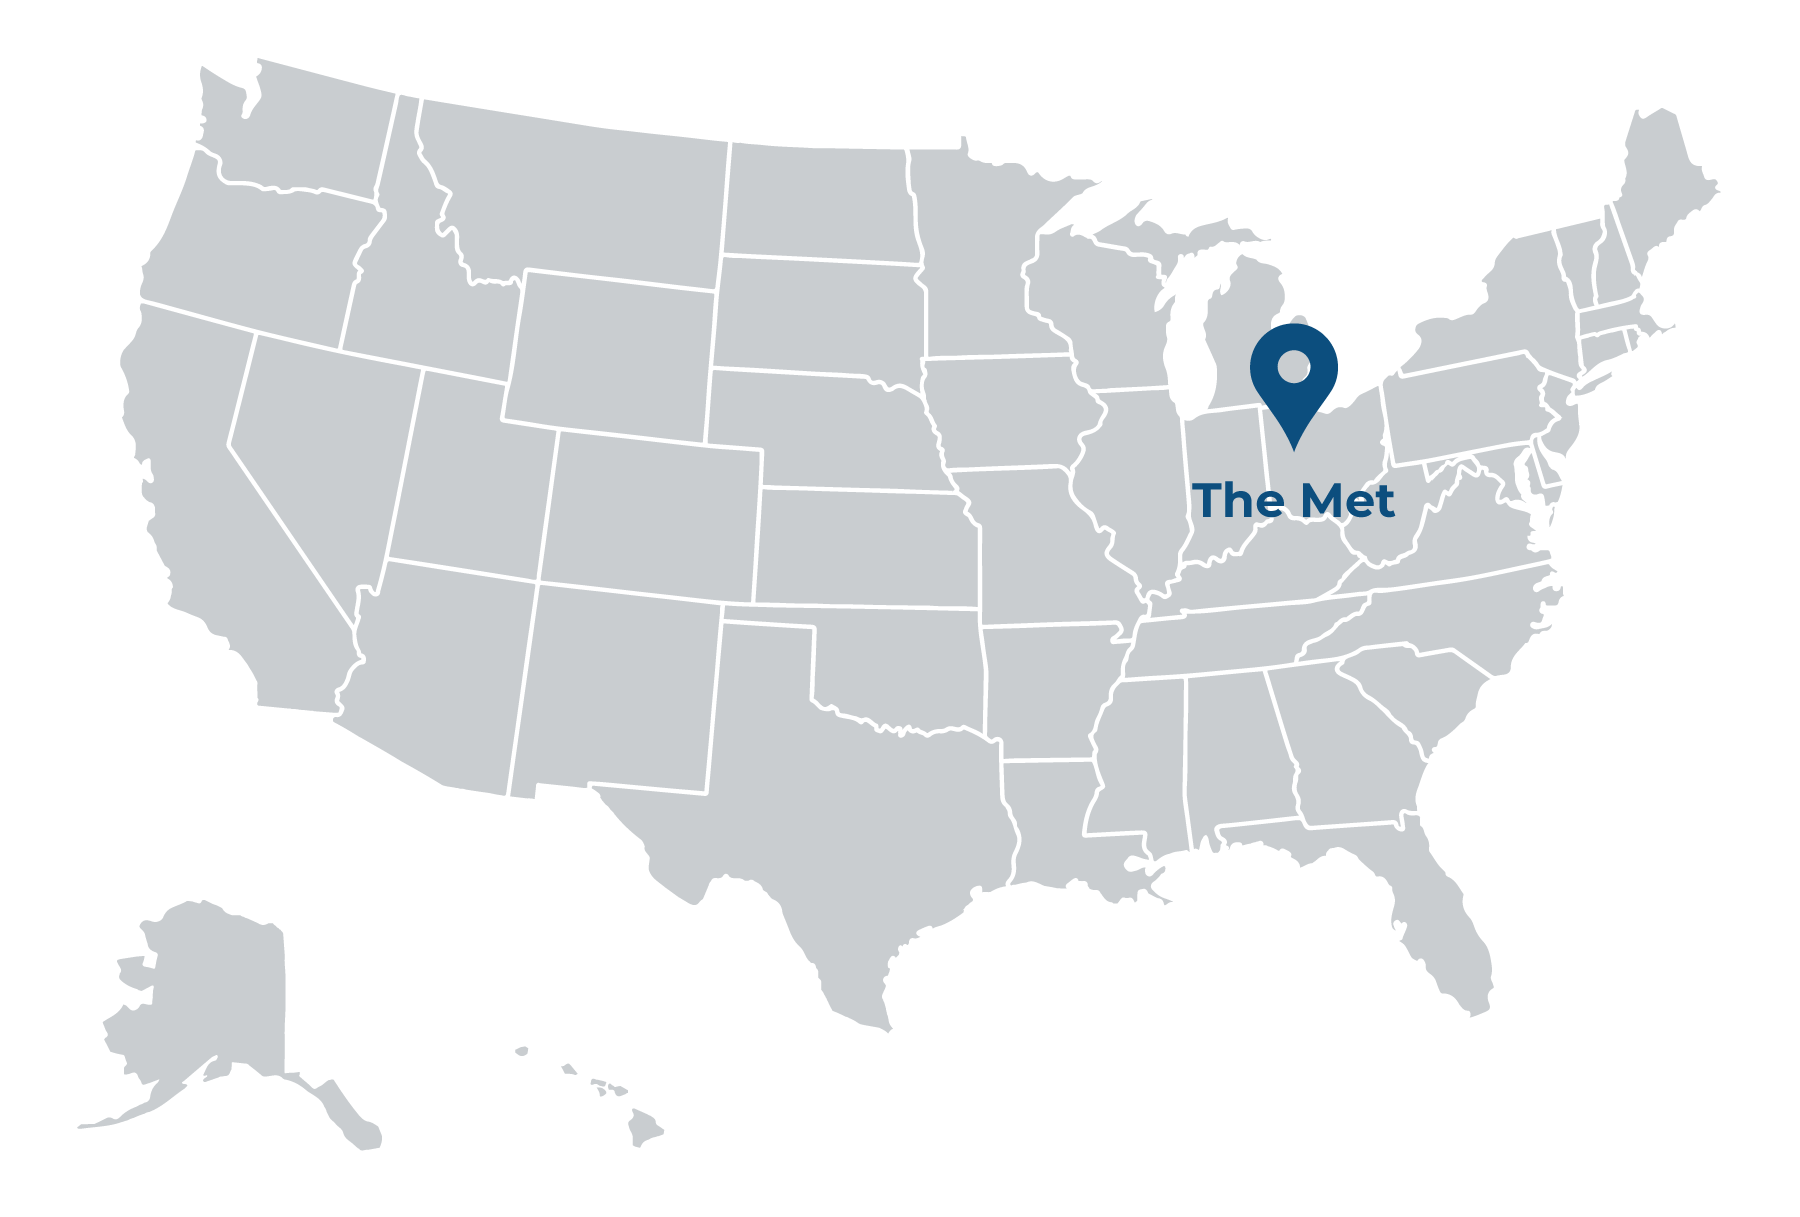 illustrated map of the united states with pin showing location of The Met